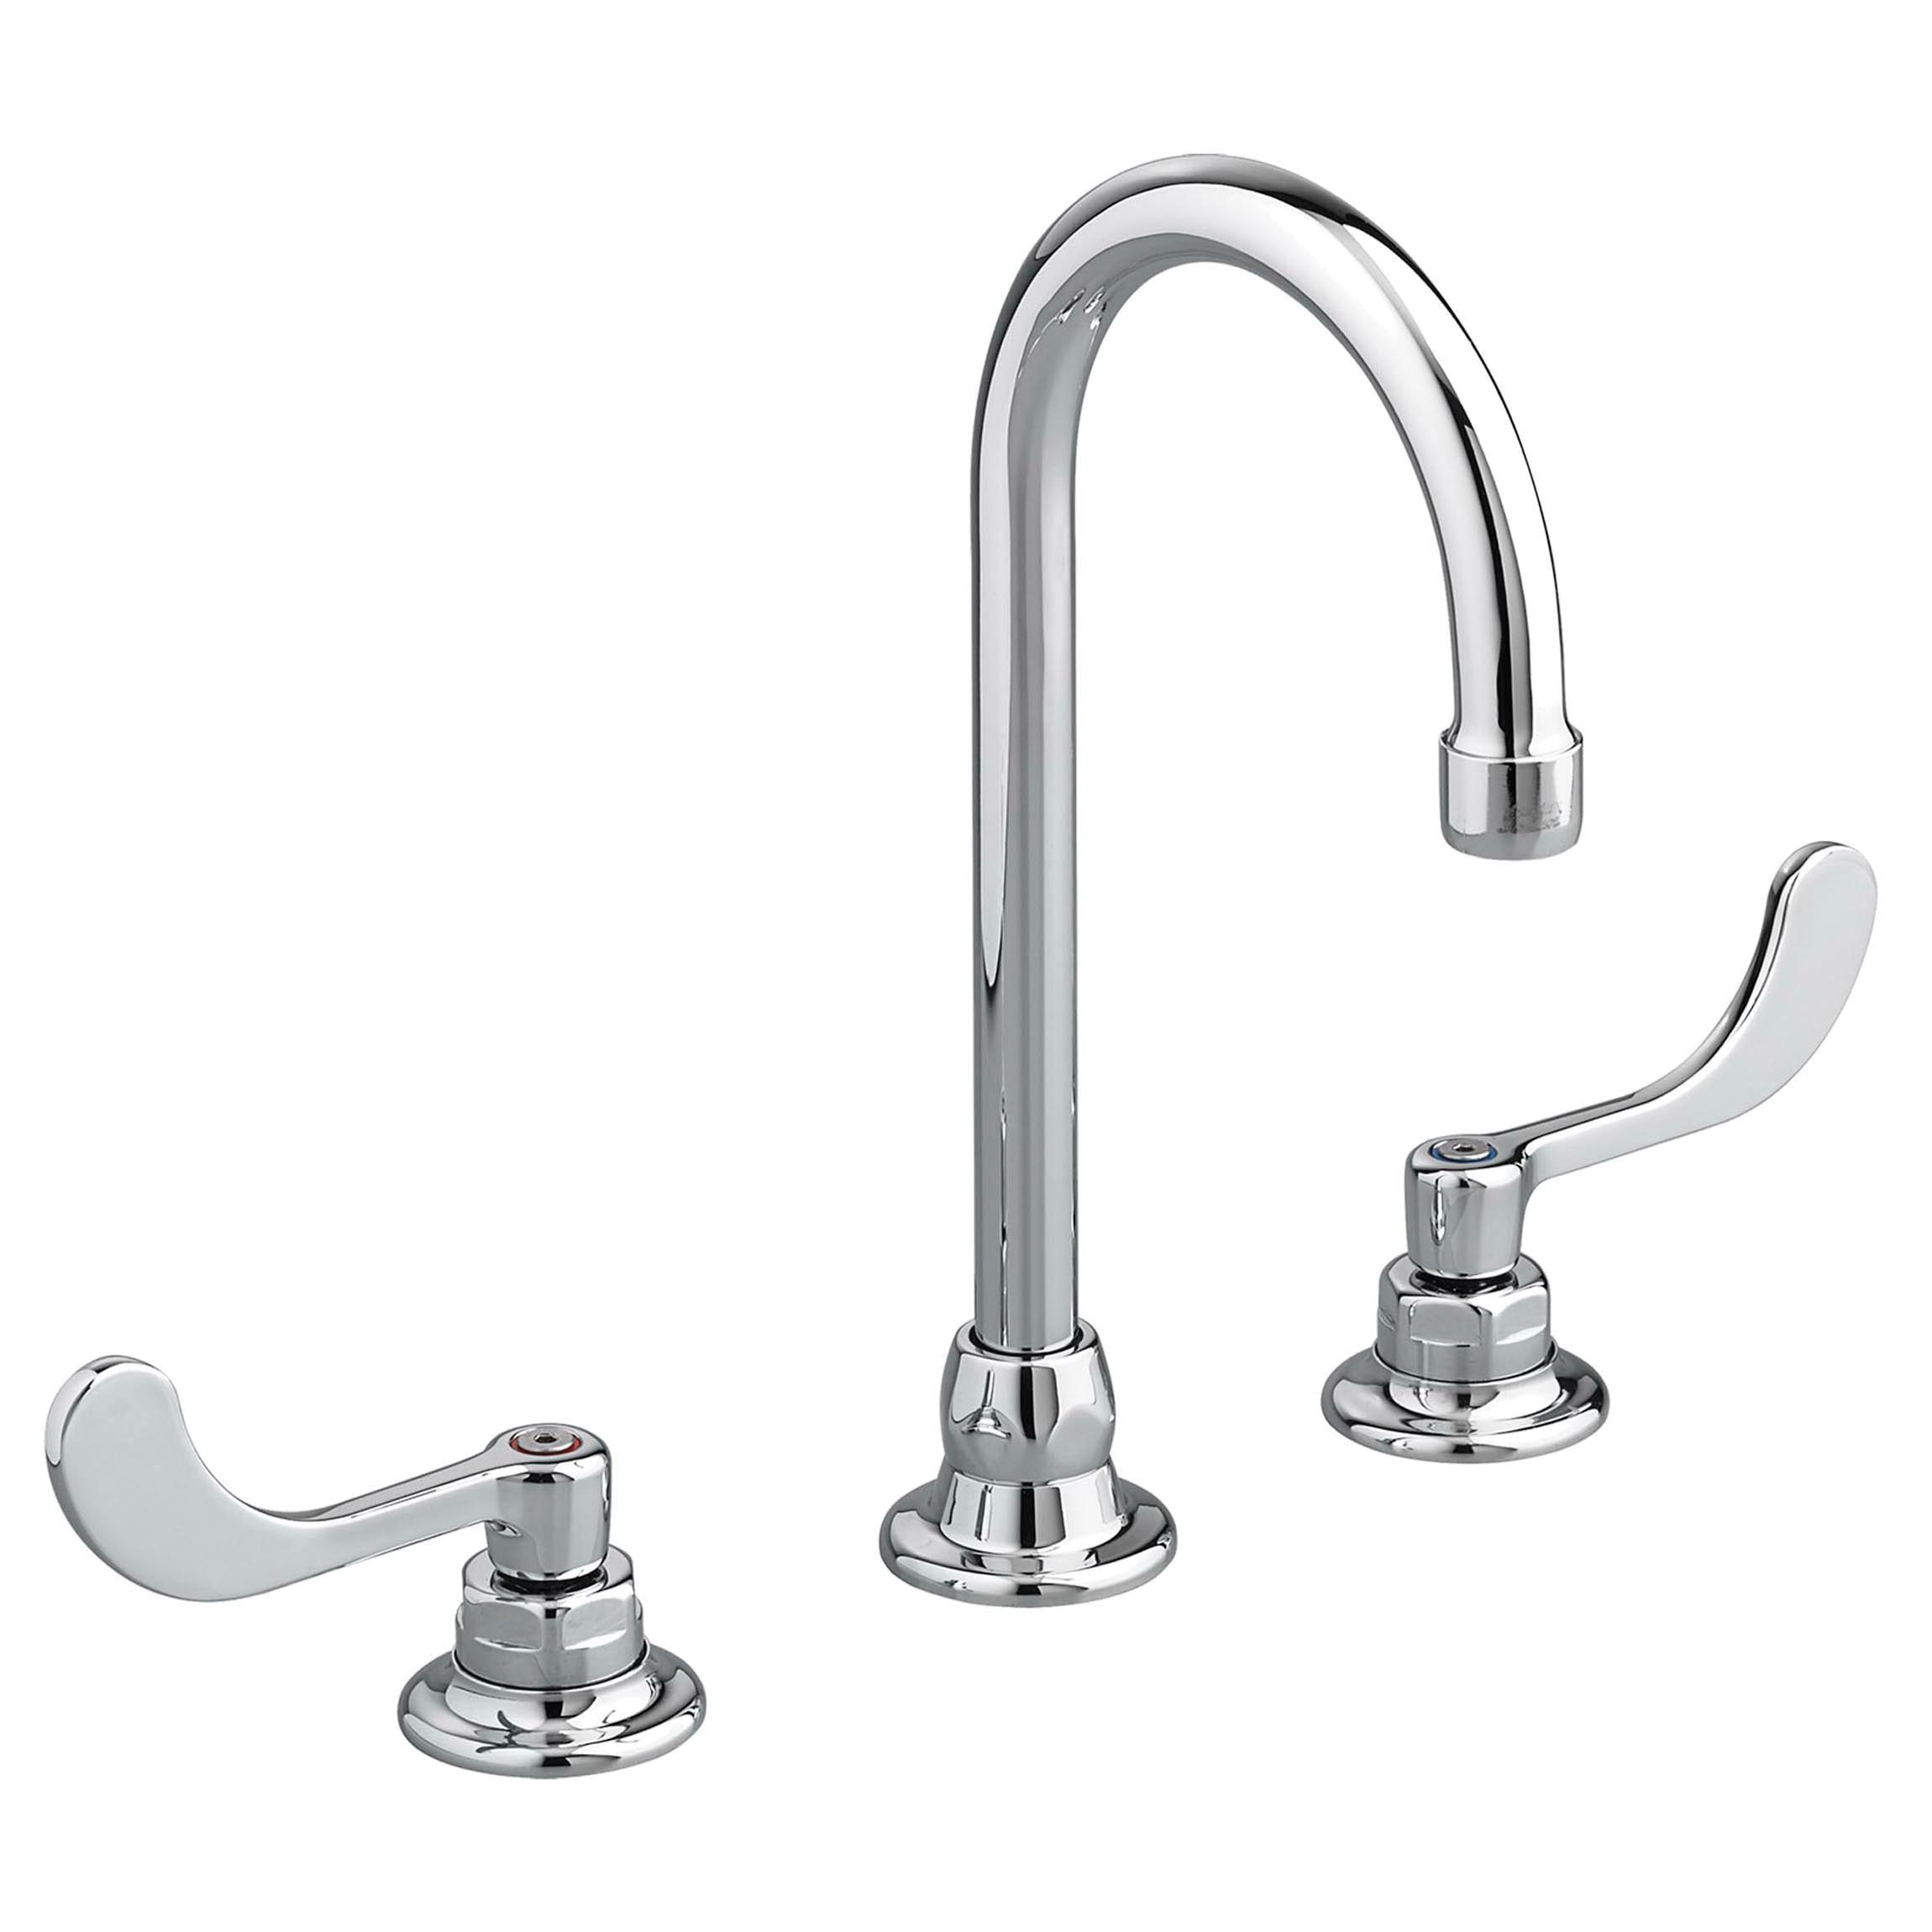 Products Pull Down Kitchen Faucet Chrome